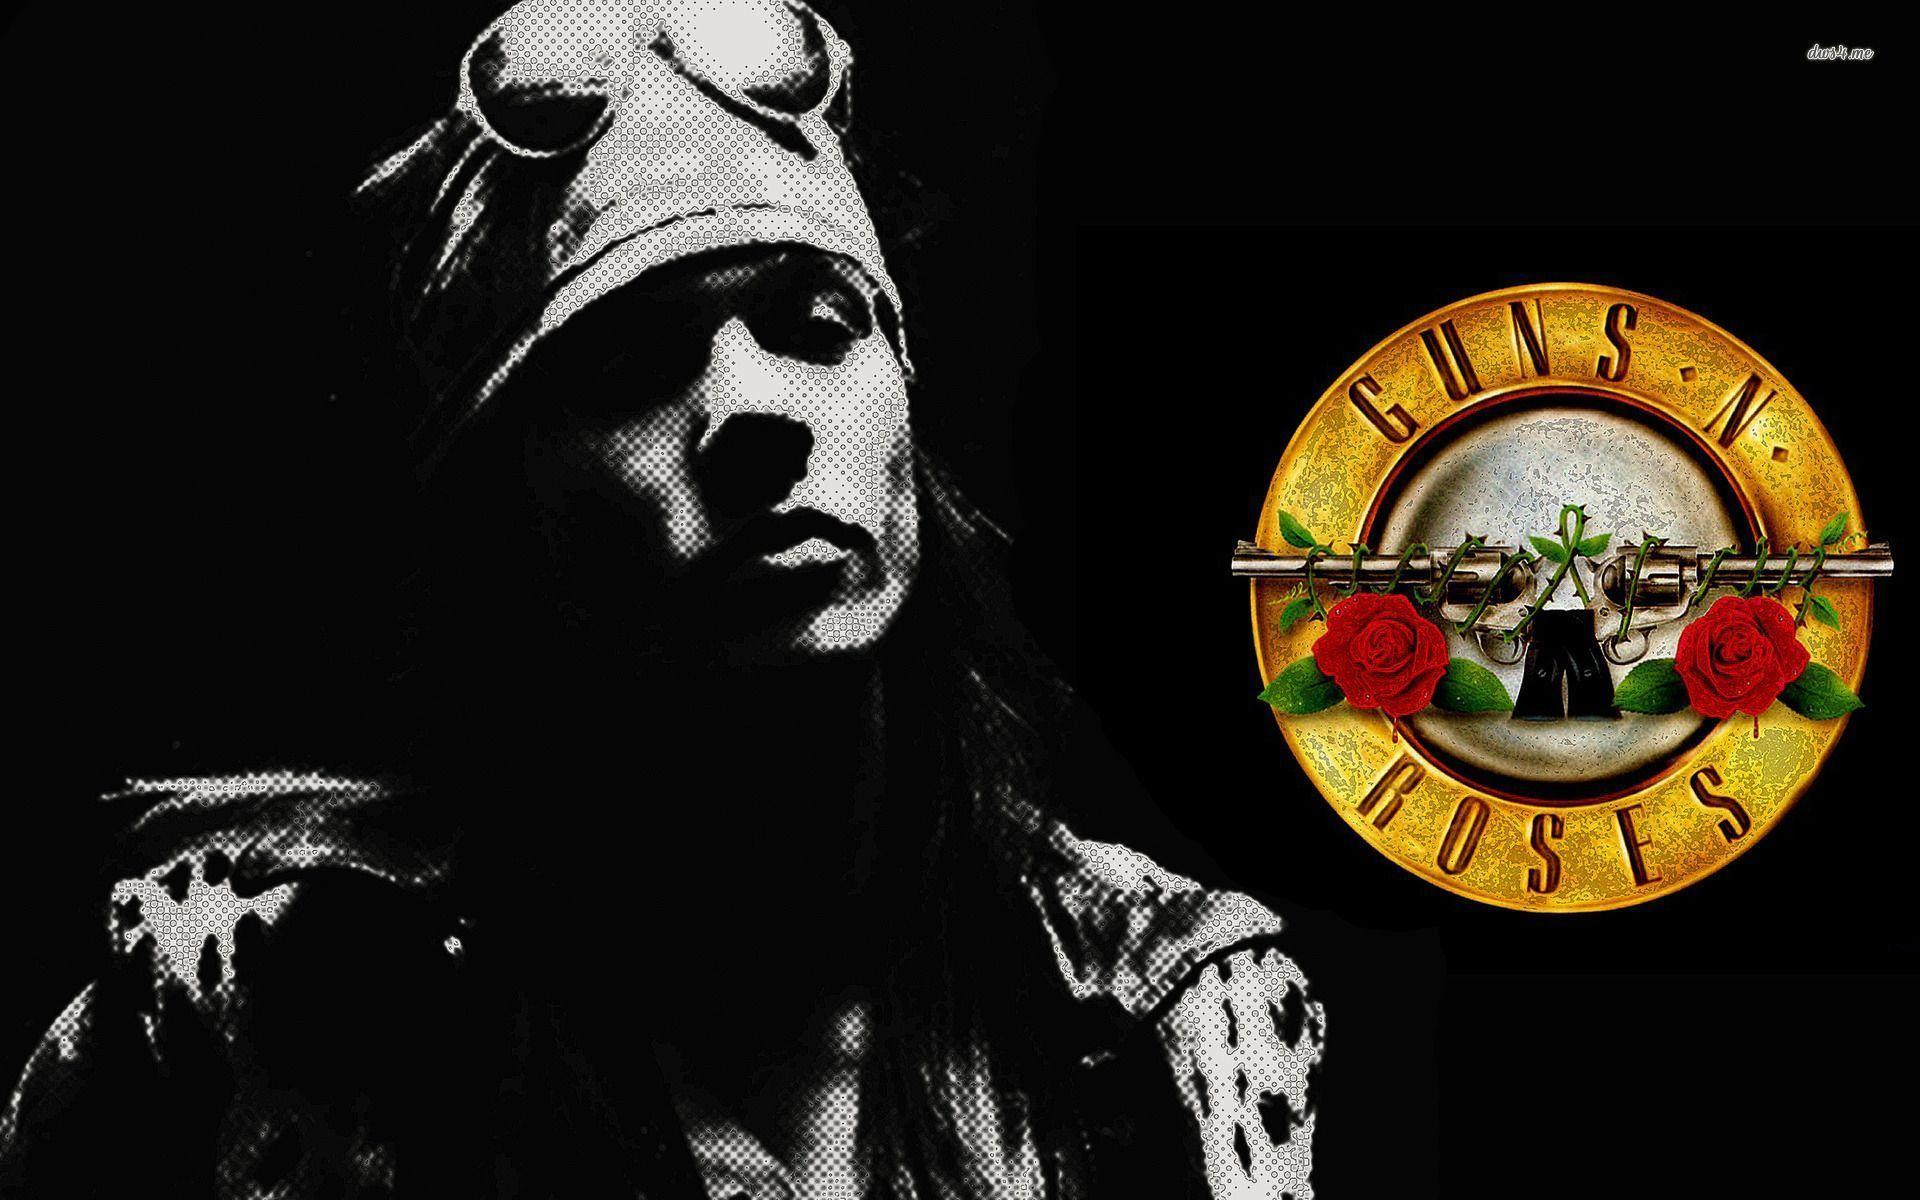 axl rose wallpaper - photo #29